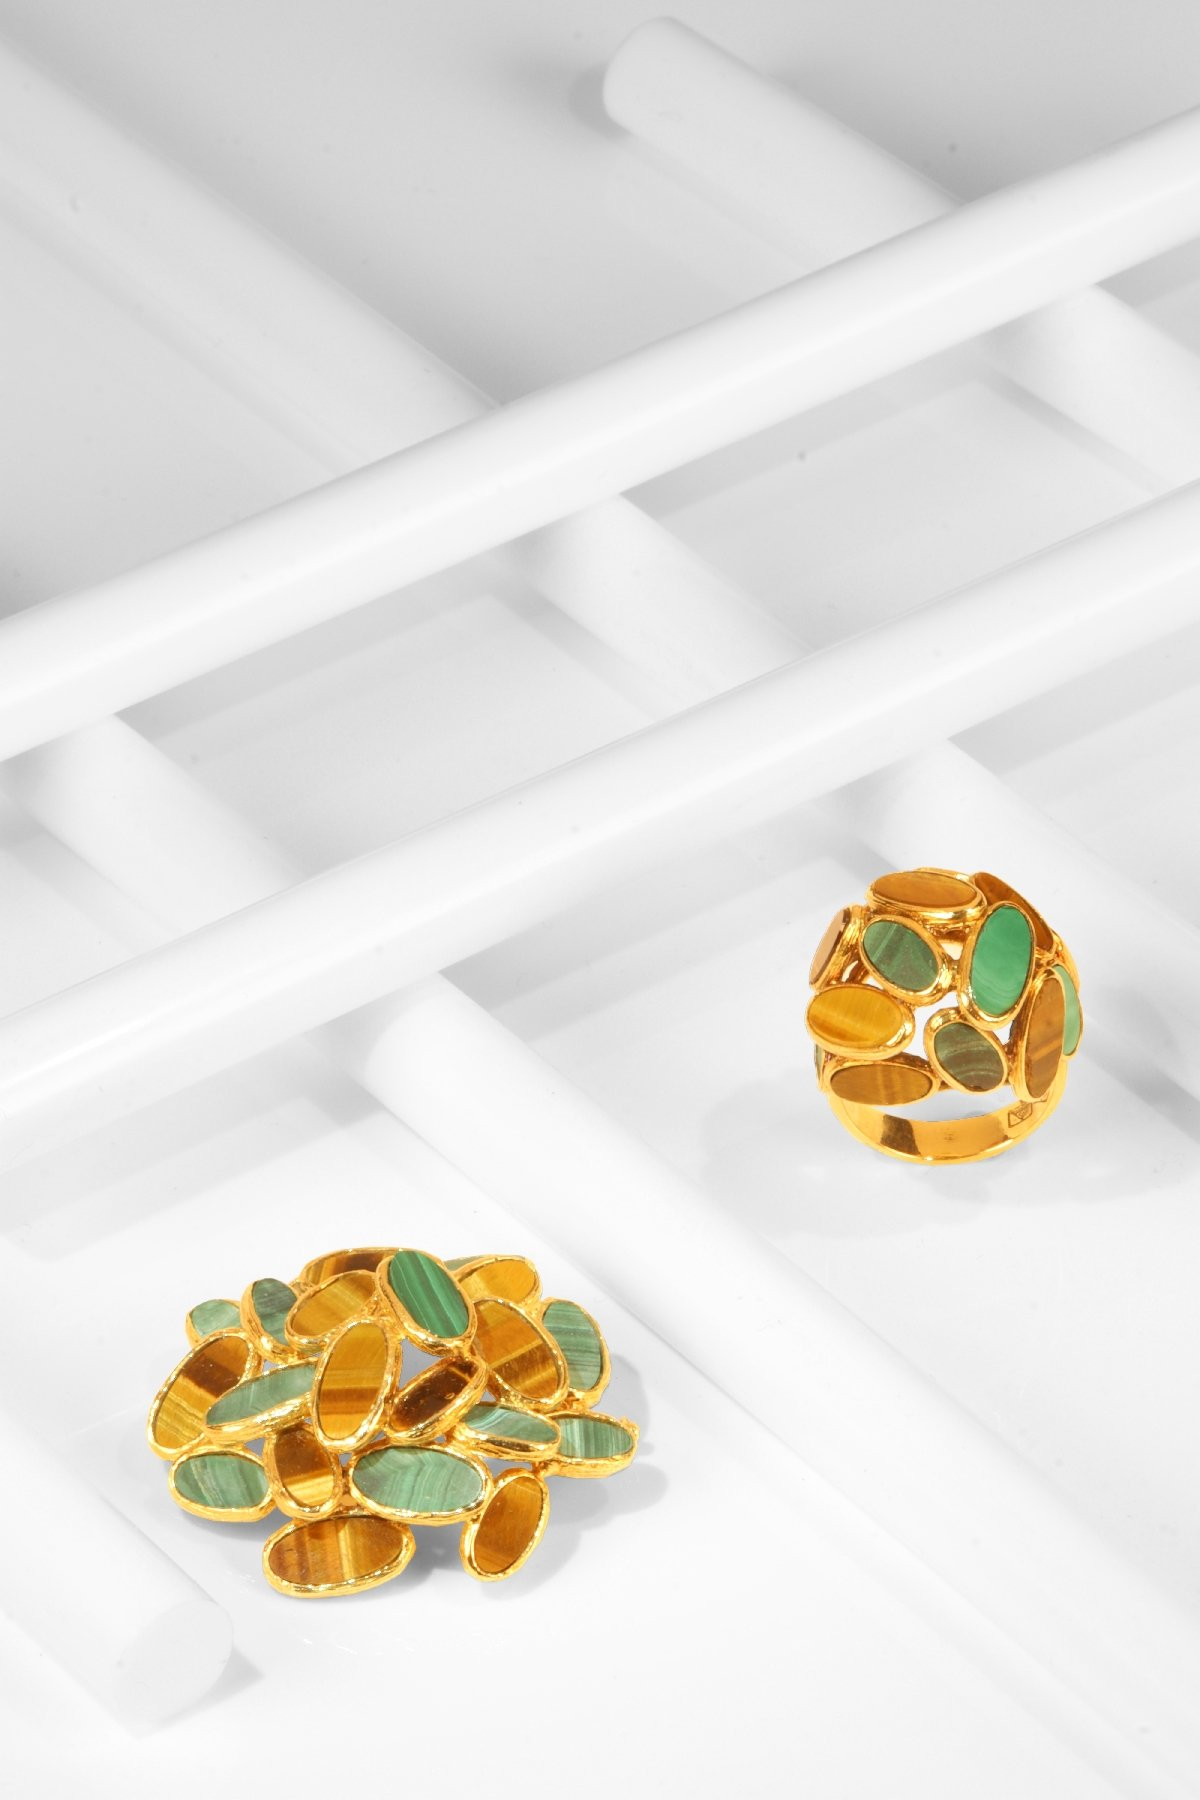 Click the picture to get to see this Vintage Sixties Pop Art ring and brooche set with malachite and tiger eye.